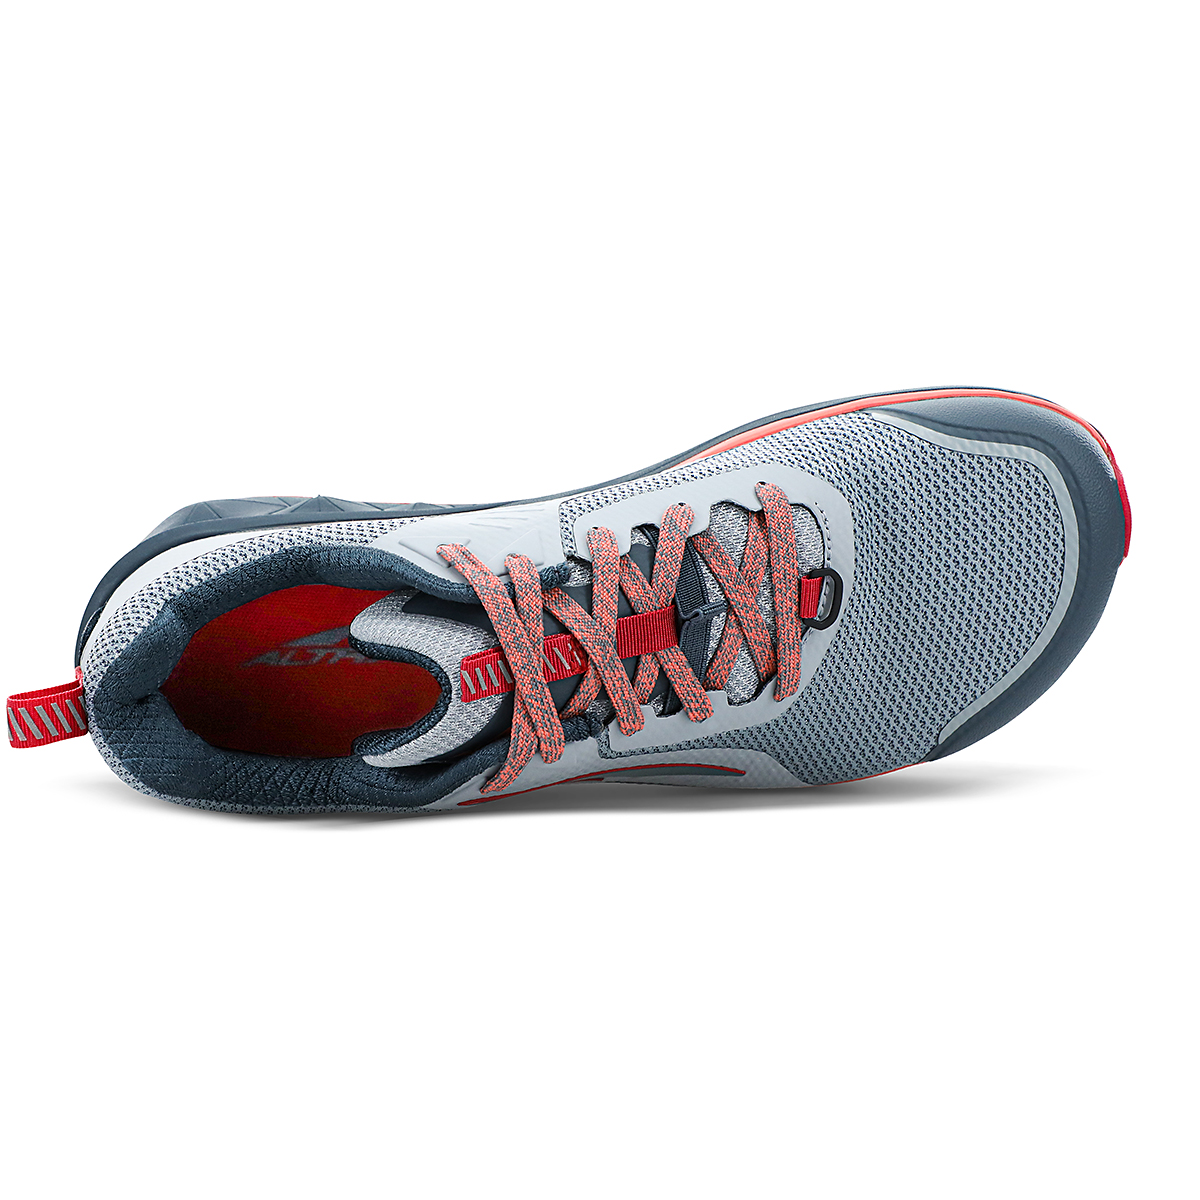 Women's Altra Timp 3 Trail Running Shoe - Color: Gray/Pink - Size: 5.5 - Width: Regular, Gray/Pink, large, image 3